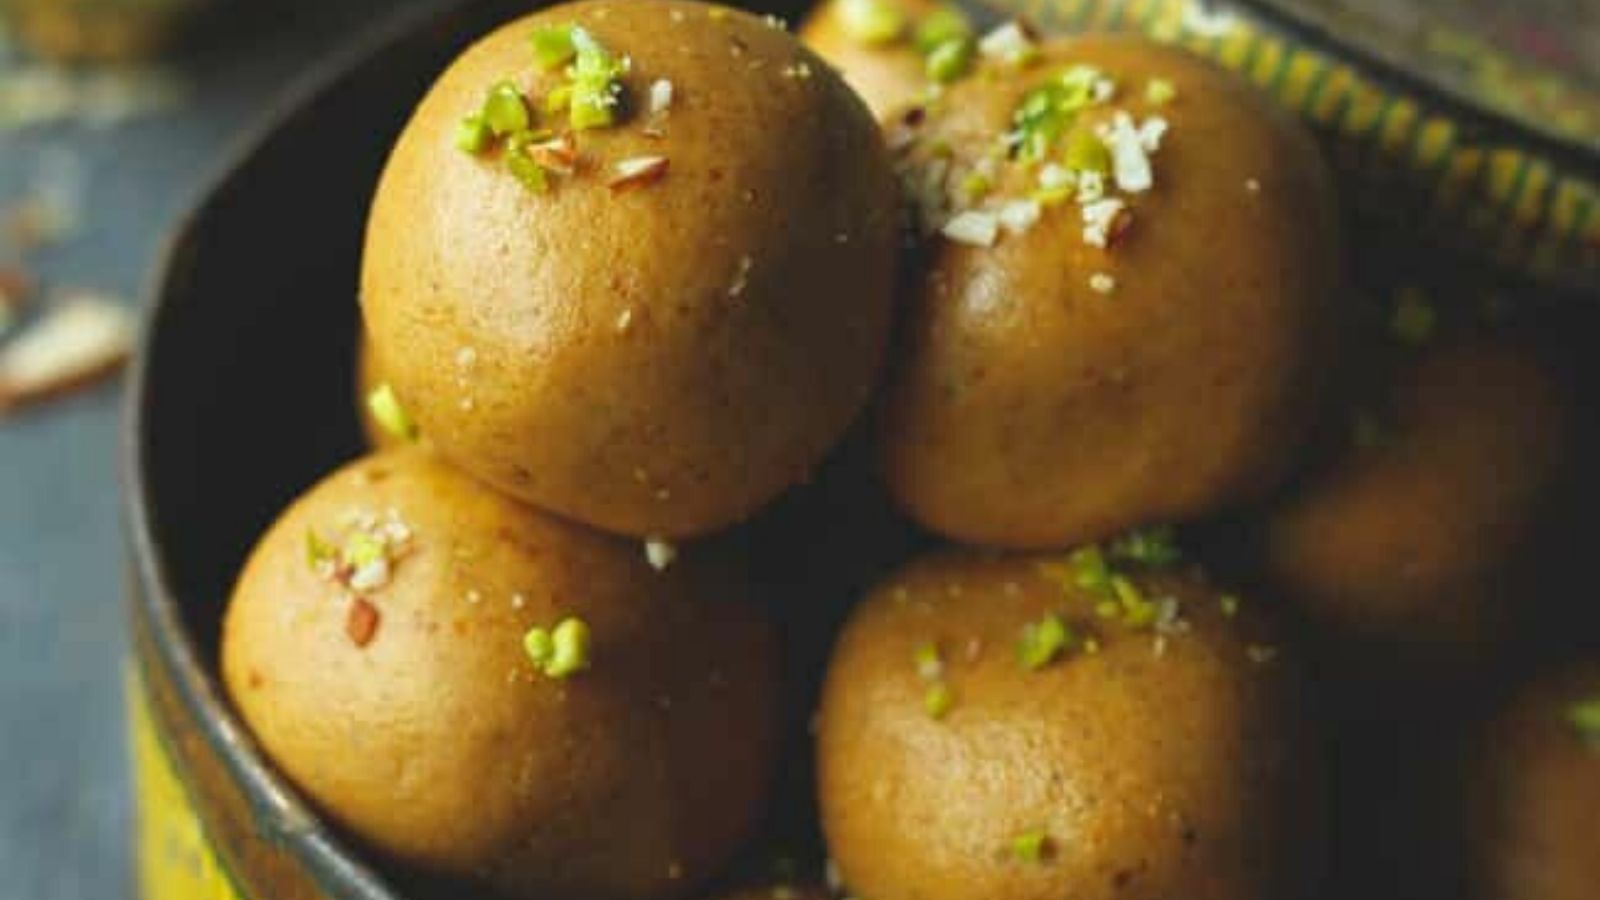 besan-ladoo-a-classic-indian-sweet